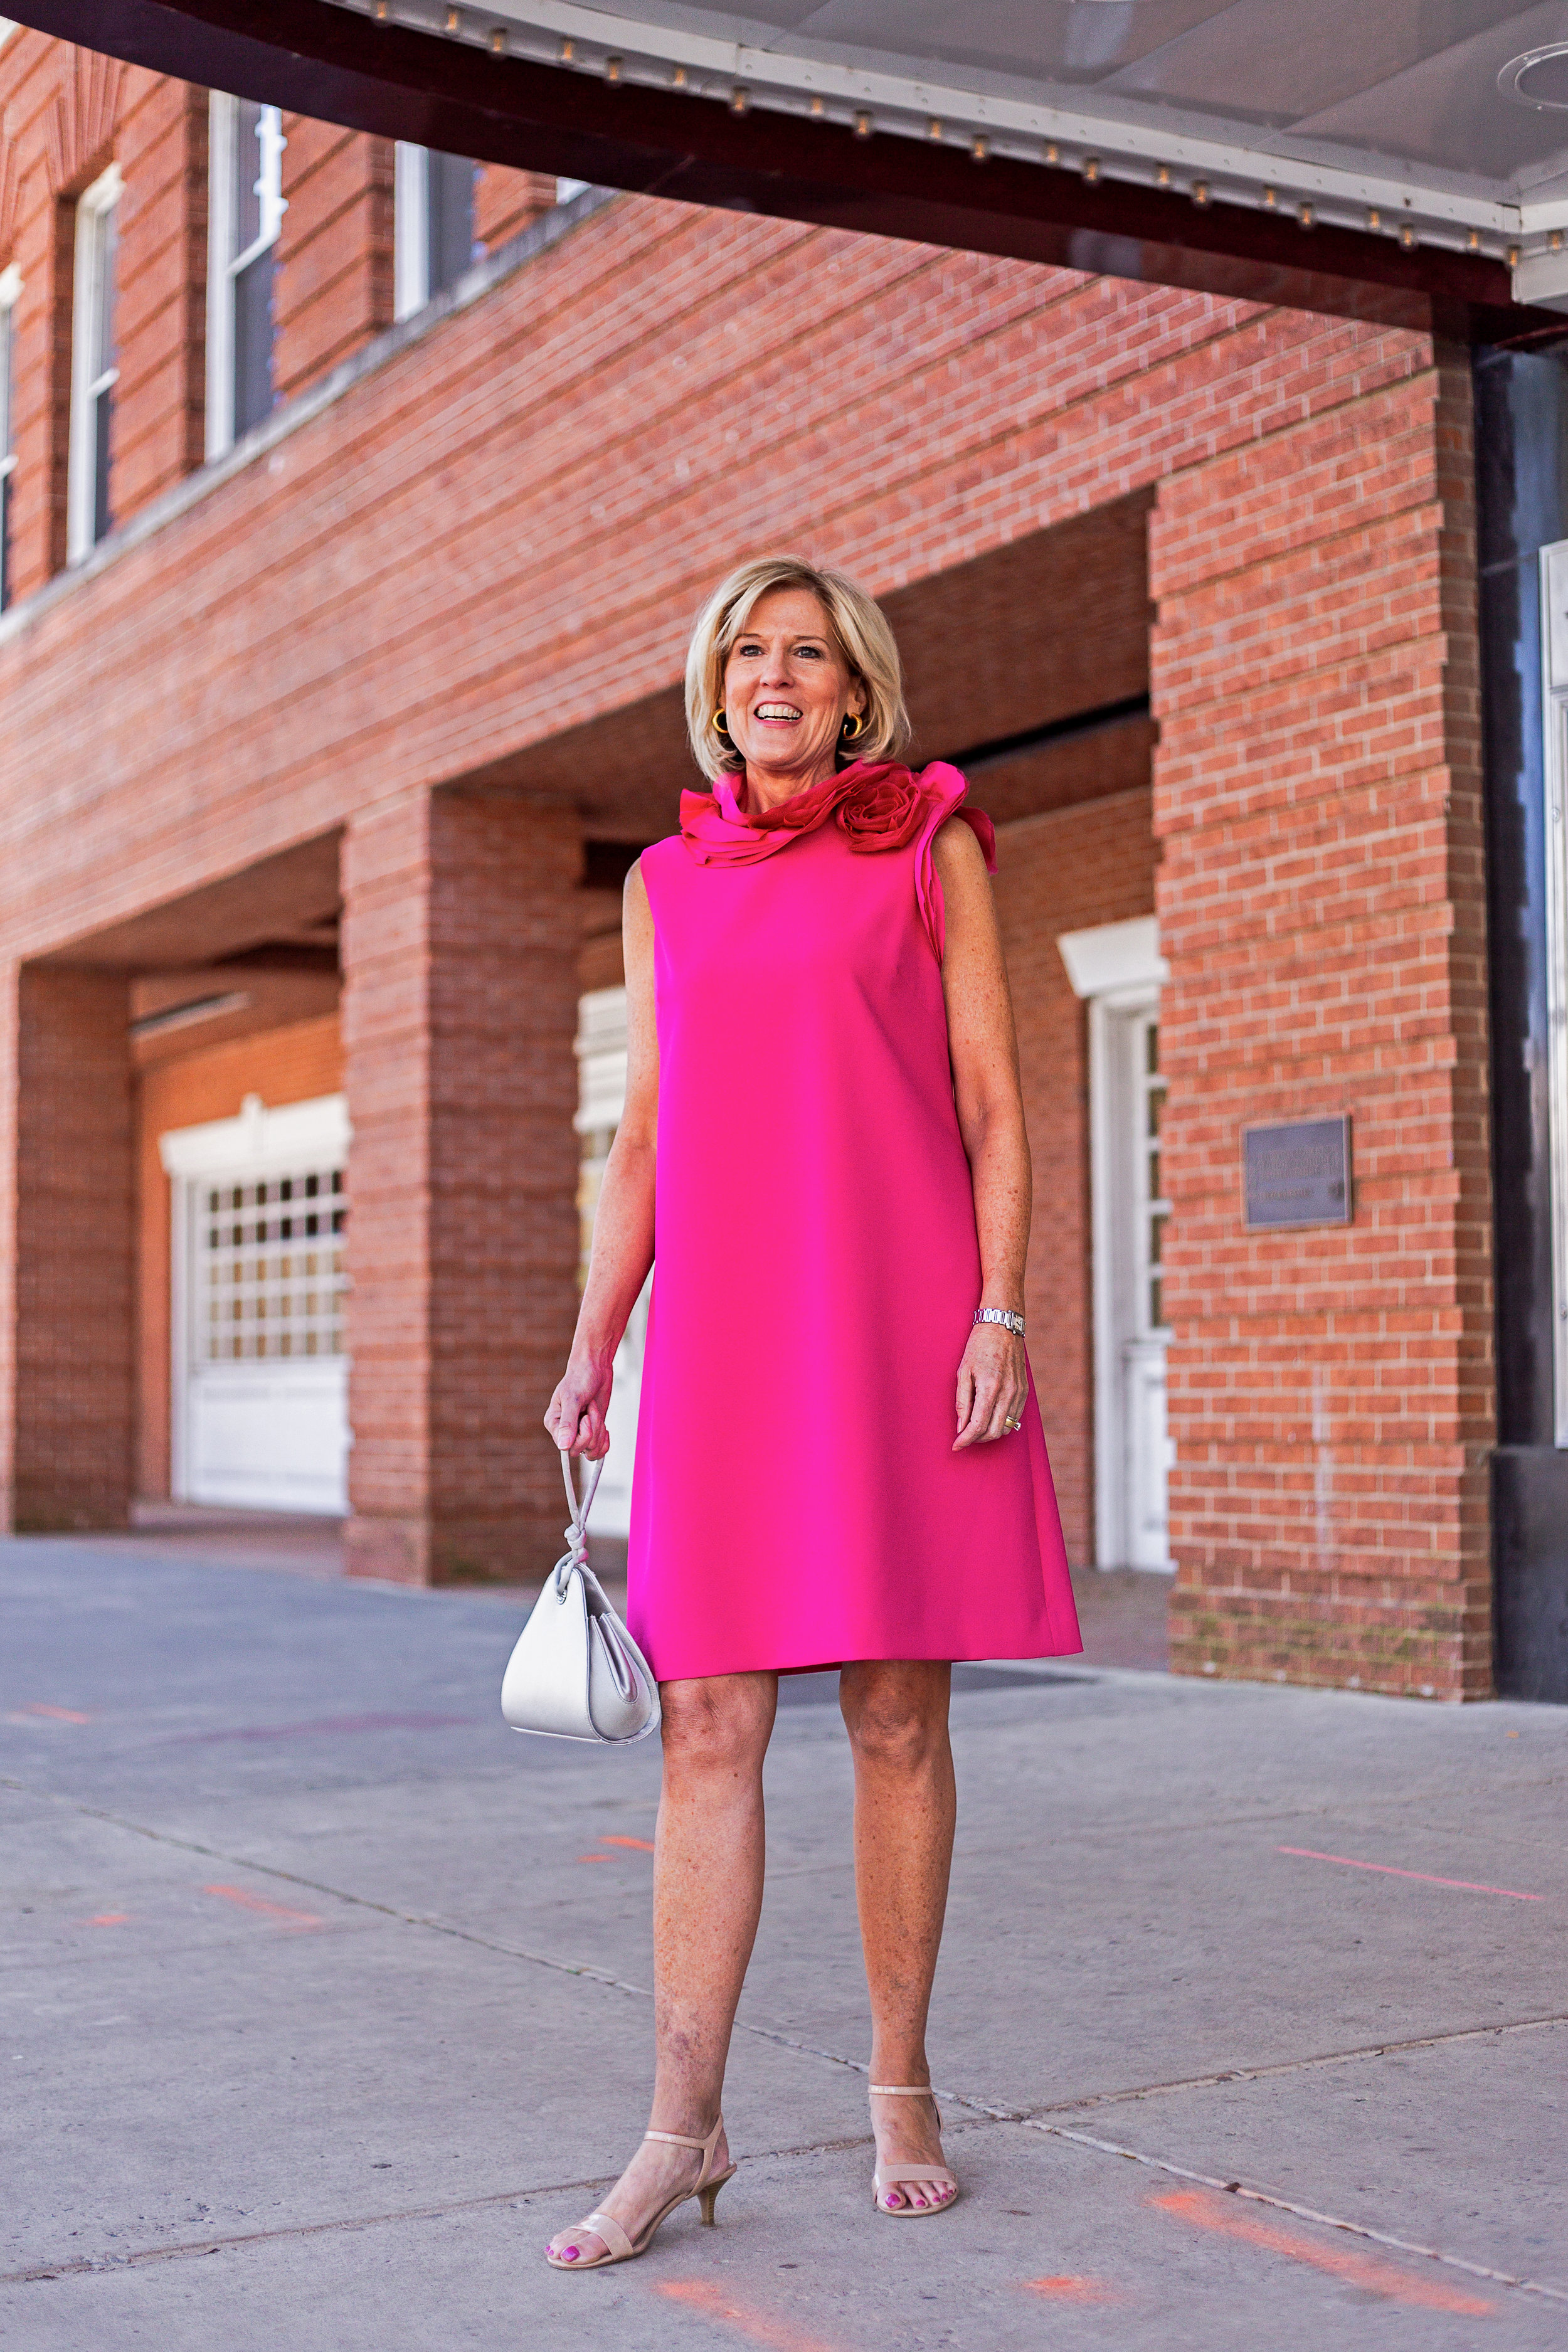 Pam Dunaway - Whether I need a couple of basic stylish t-shirts, a cocktail dress, or some fabulous accessories, my go-to place to shop is Brittany! Sybil, Susie, and Claire always know what I like and are willing to help me find it. Best boutique in town!